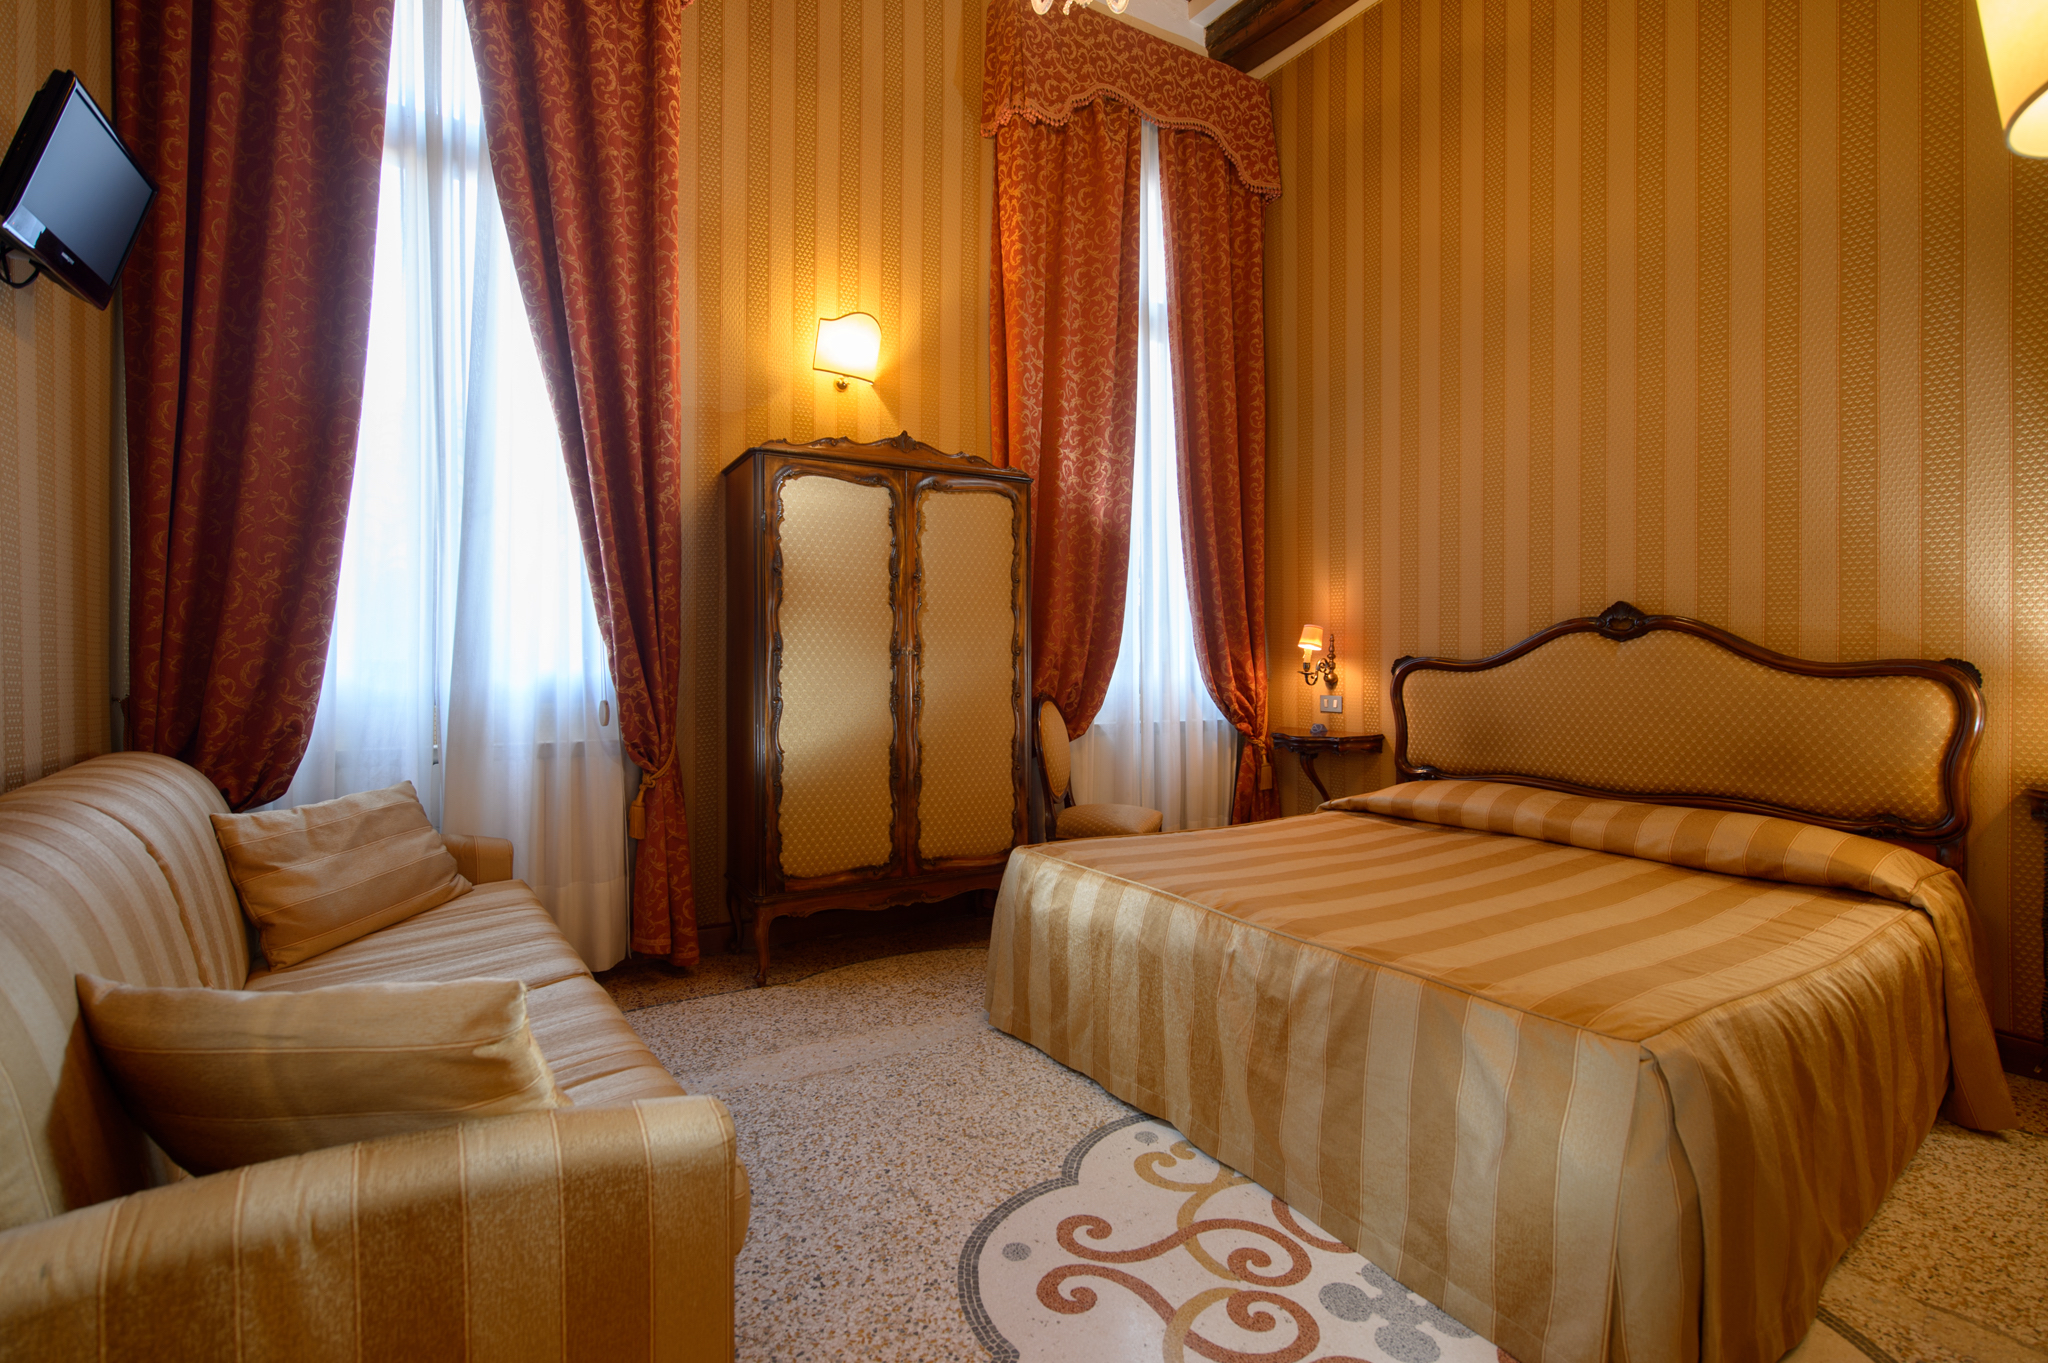 Hotel Centauro | Venice | Our Classic and Elegant Rooms